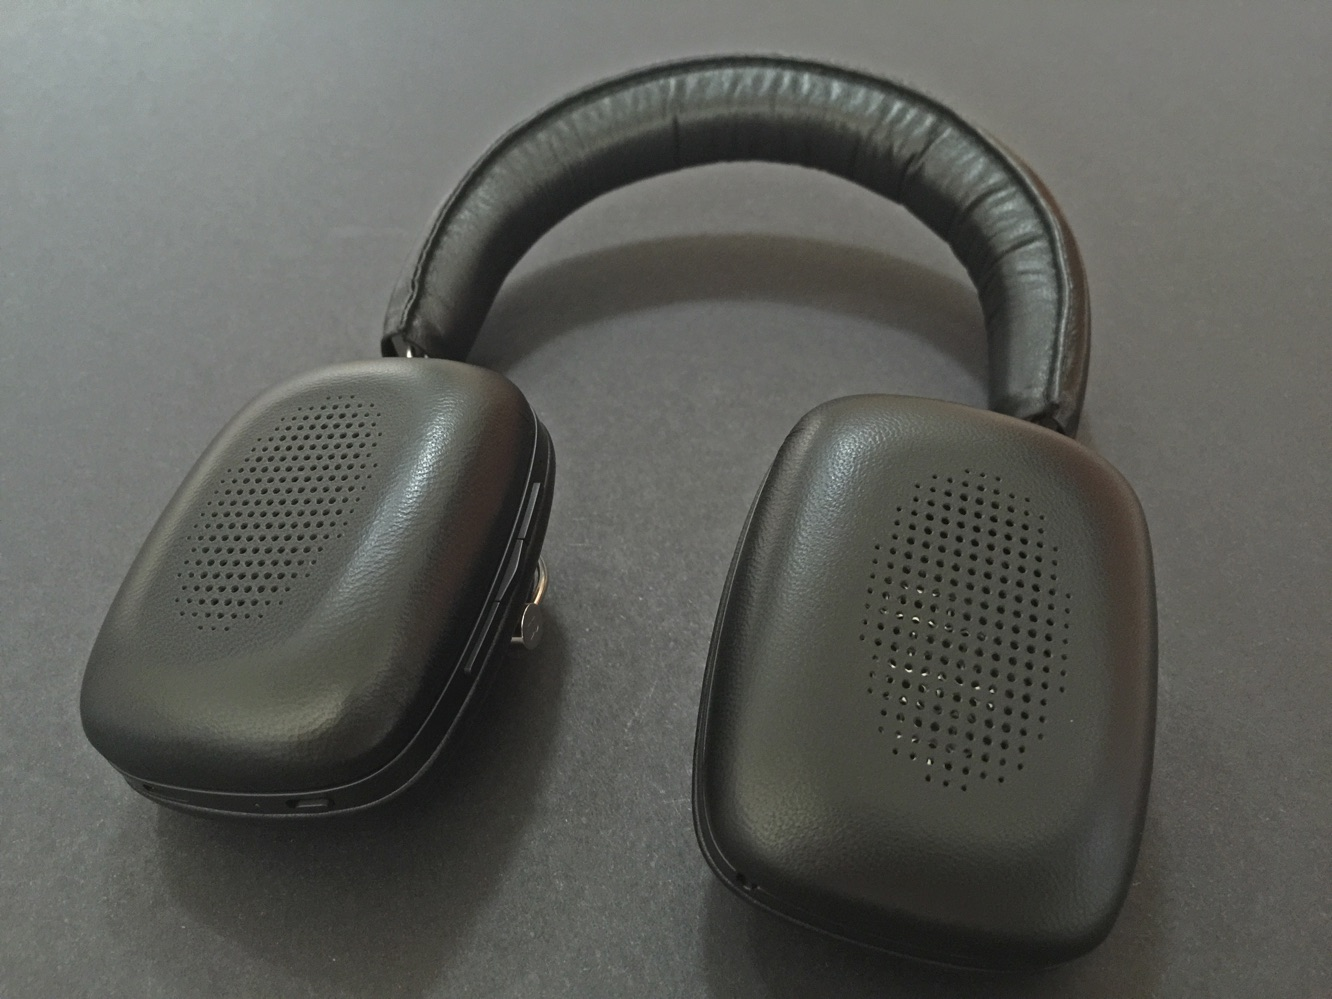 Review: Bowers & Wilkins P5 Wireless Headphones